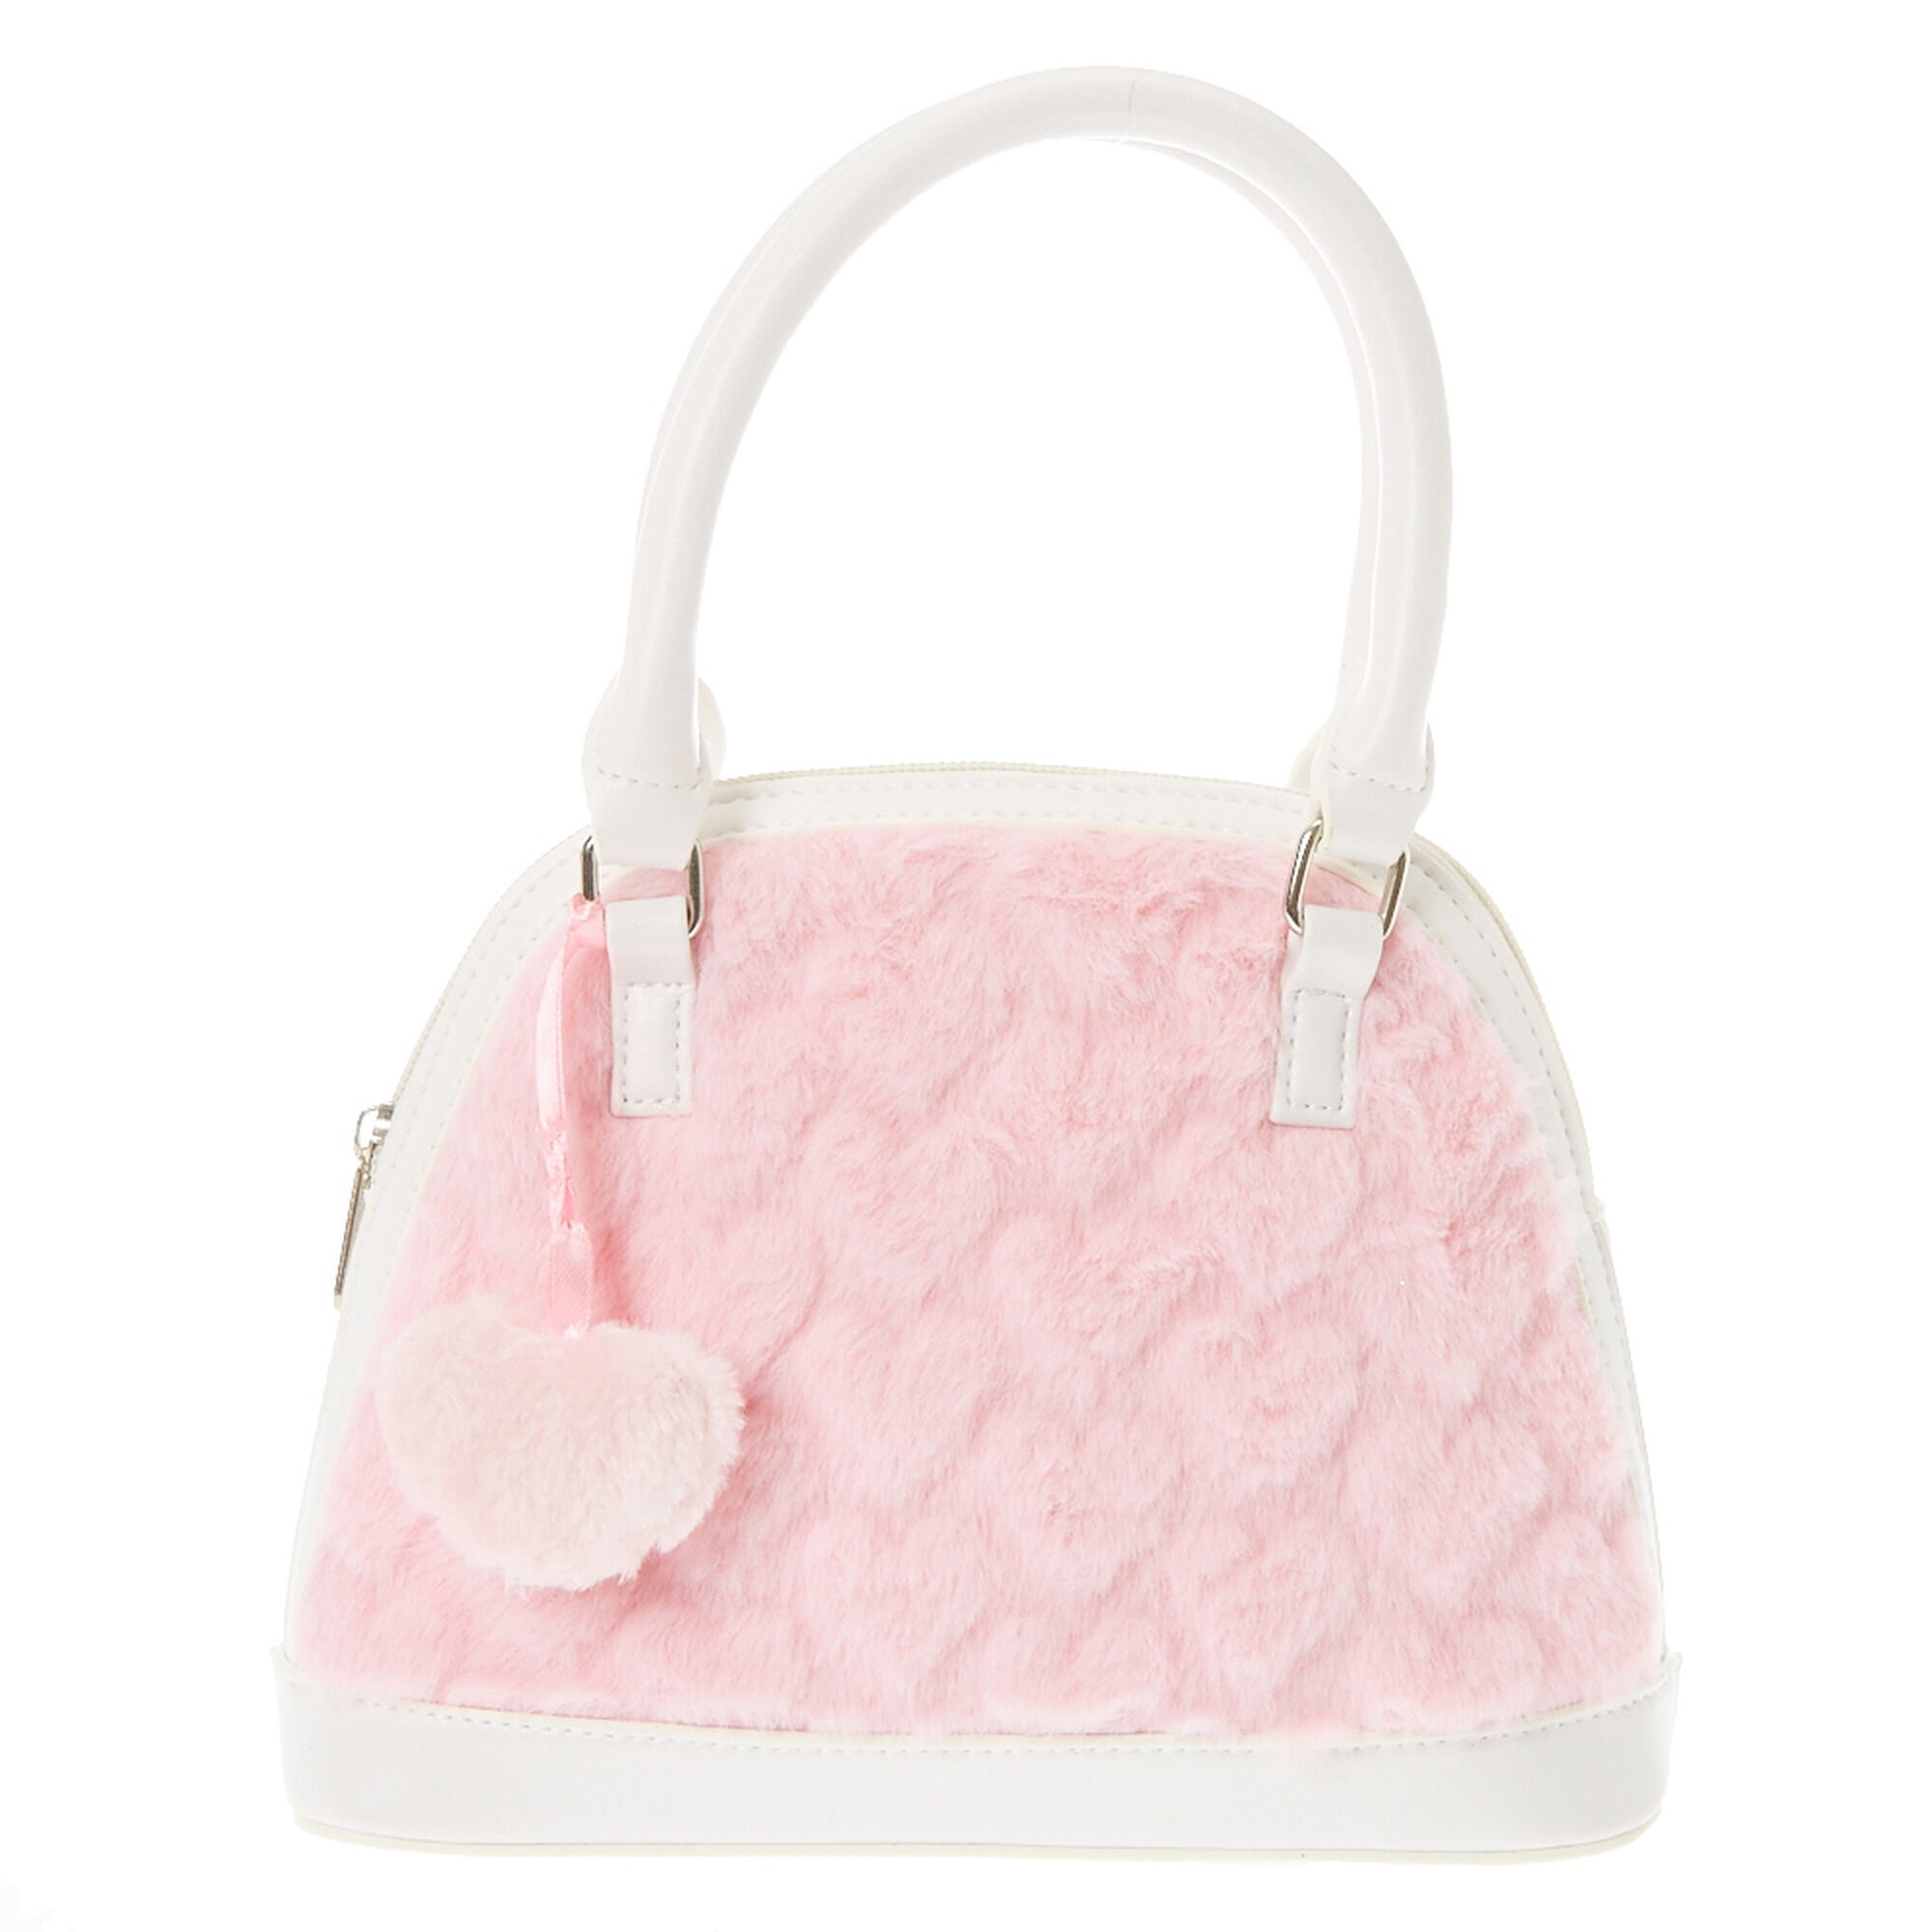 Kids White And Pink Heart Faux Fur Handbag